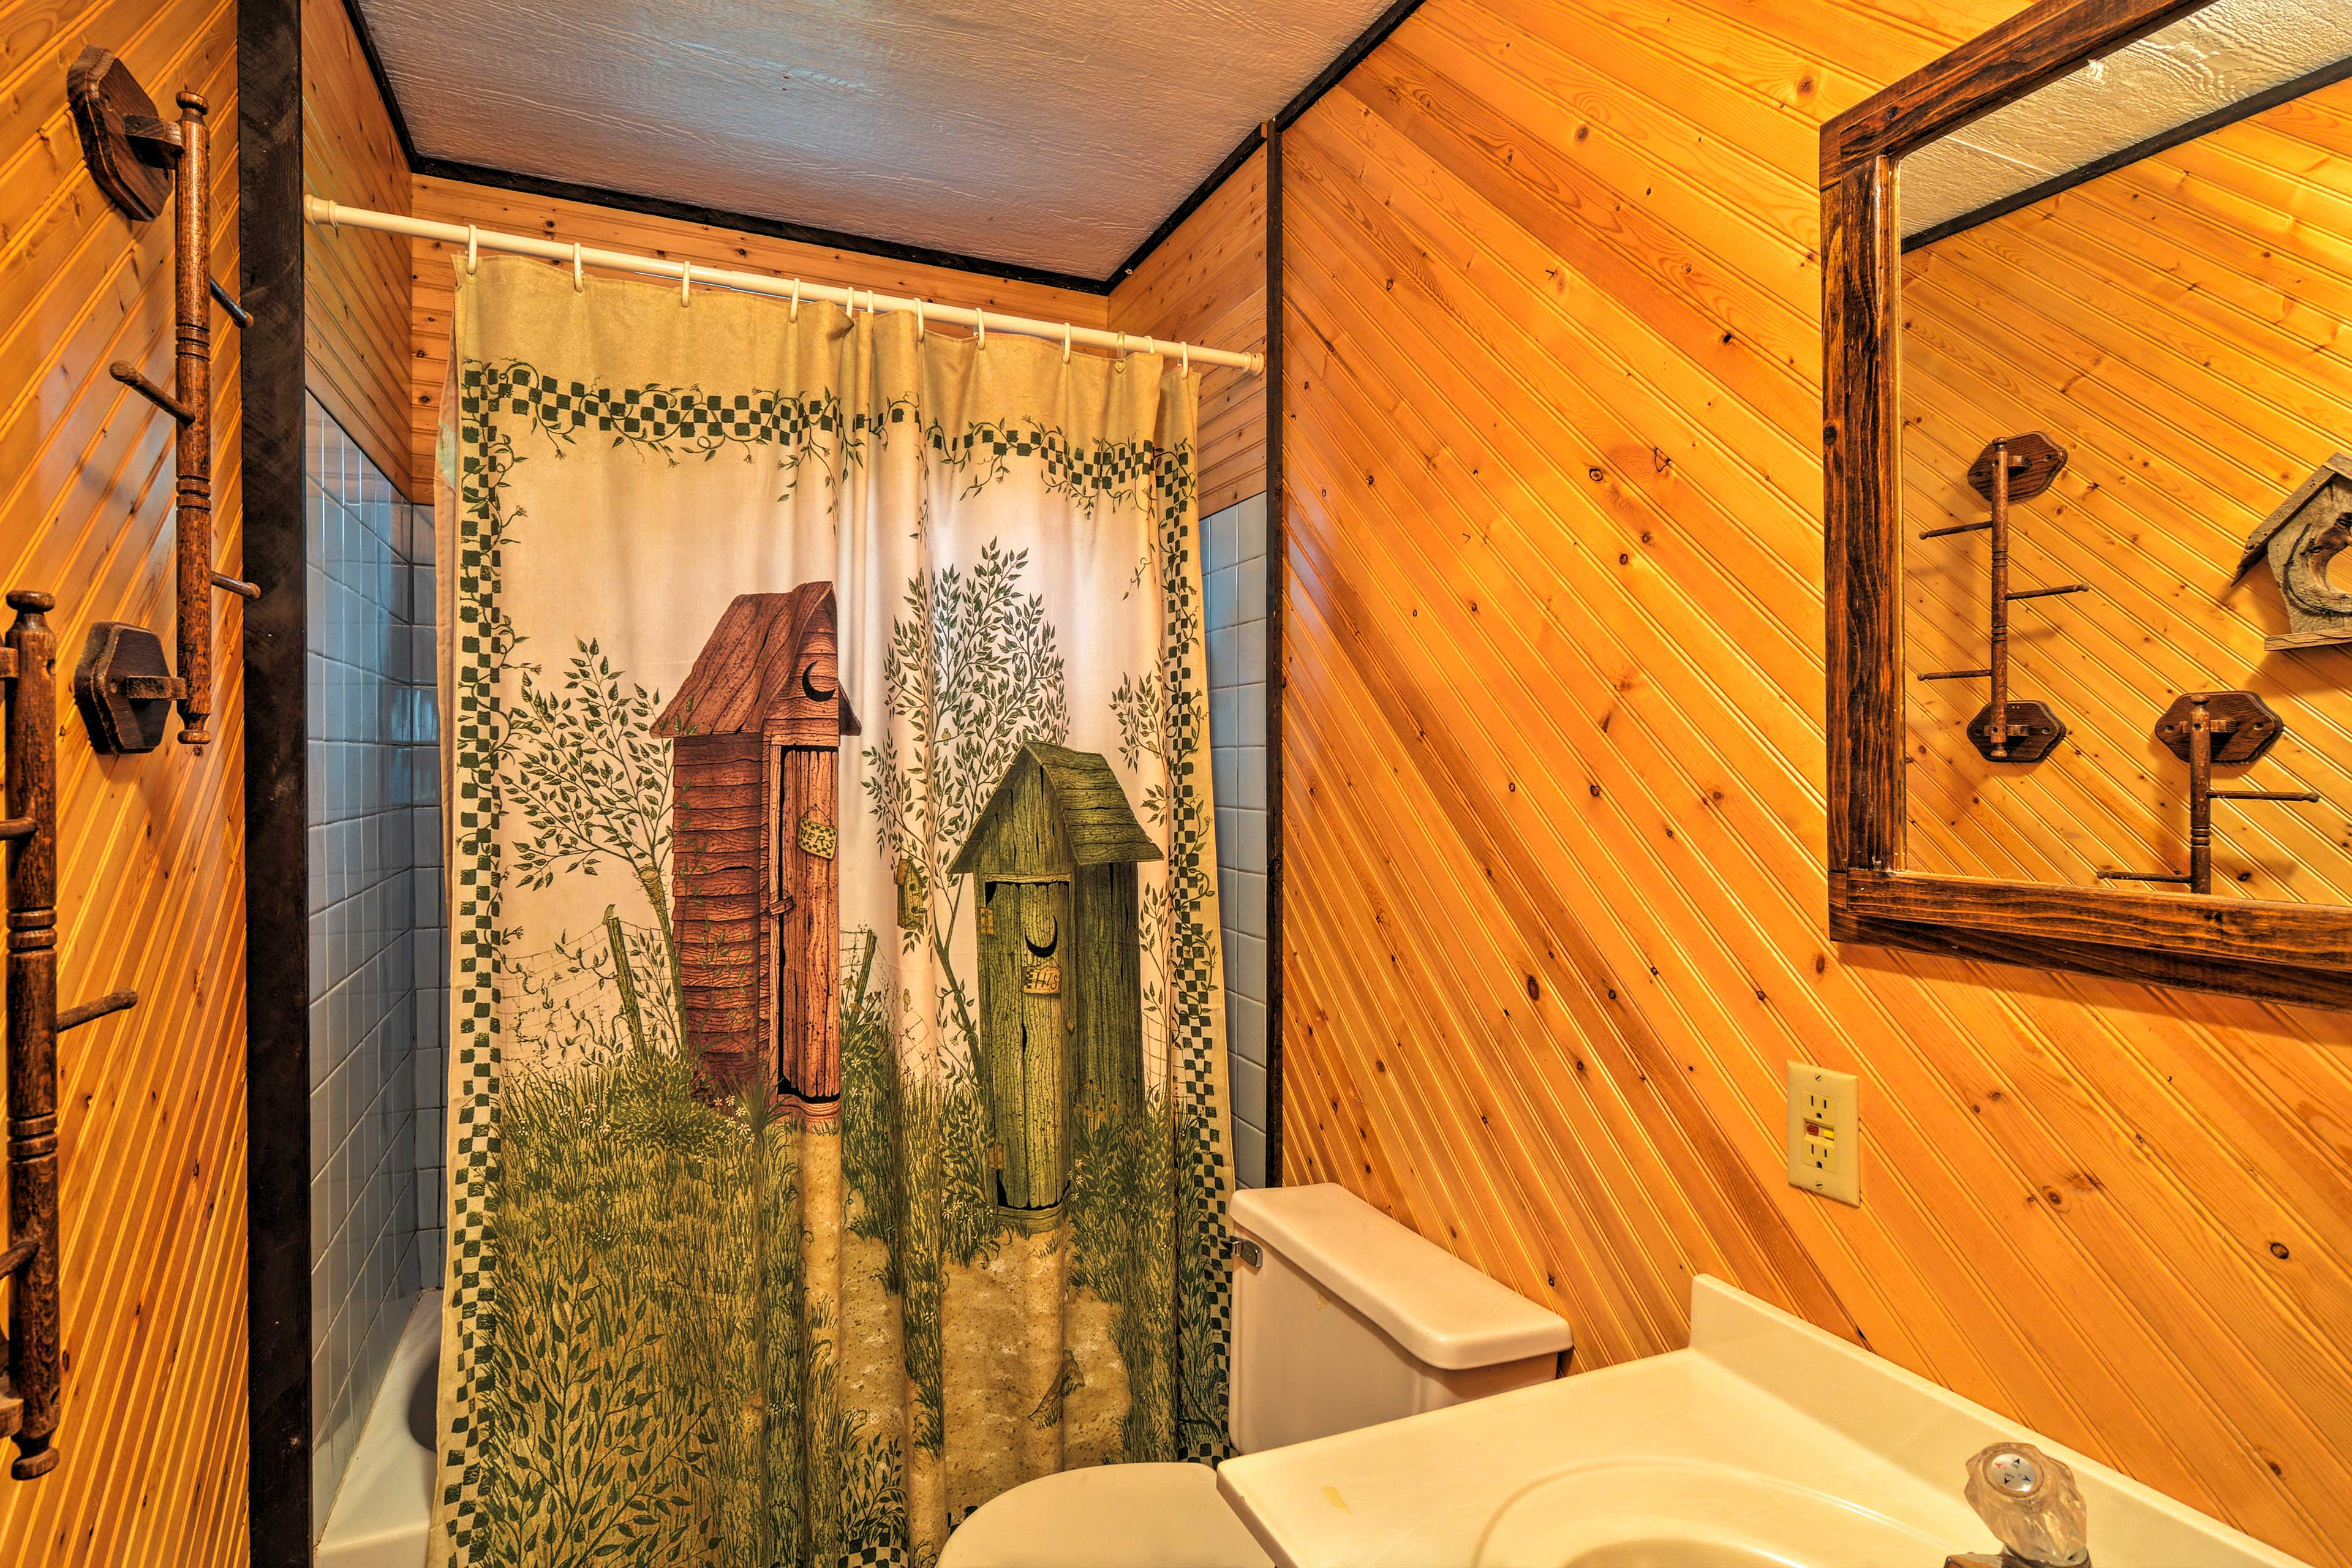 The full bathroom is furnished with a shower/tub combo.